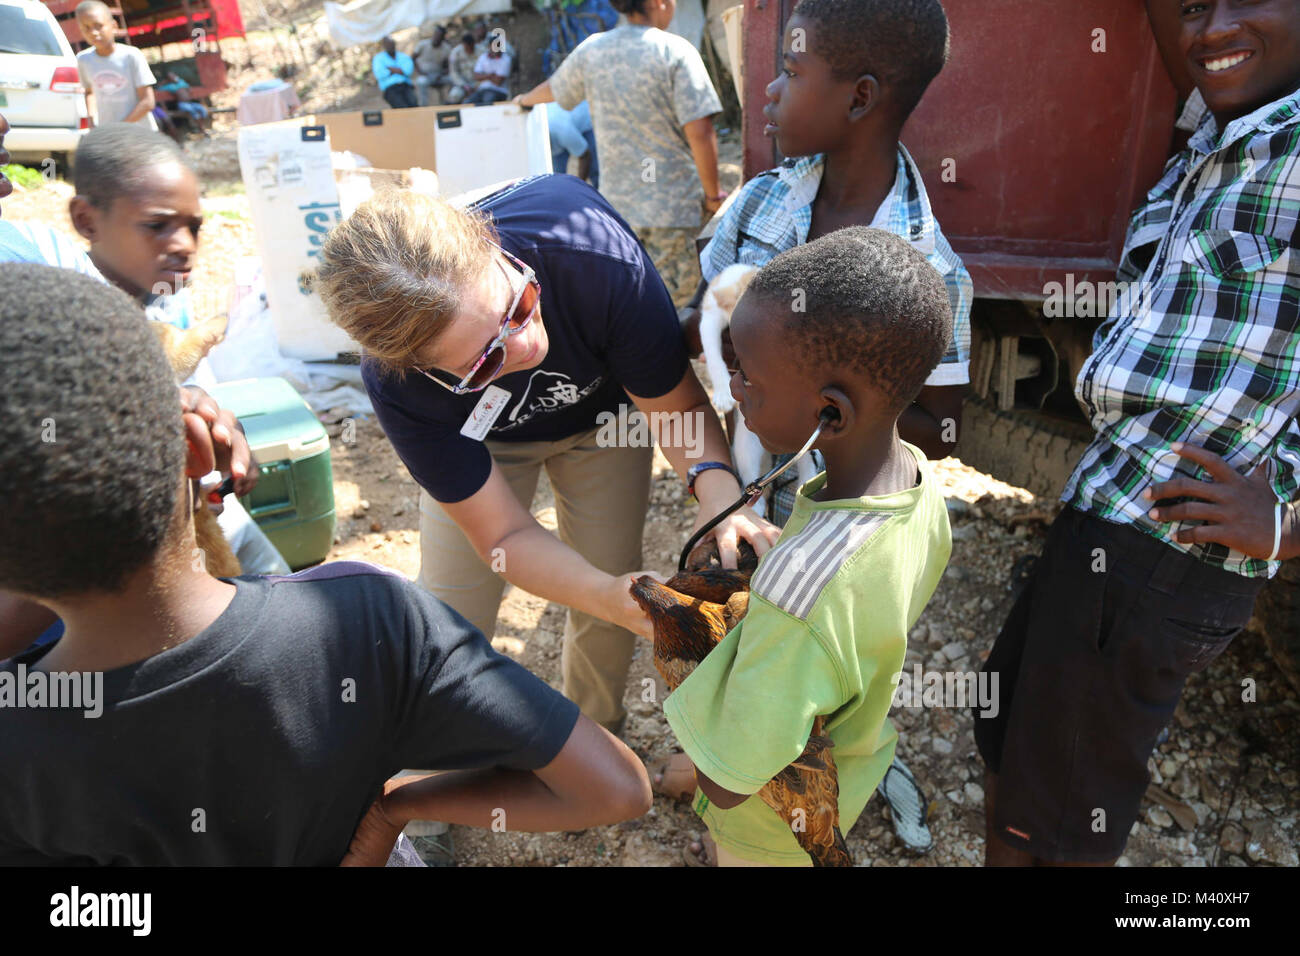 150917-A-BK746-197 PORT AU PRINCE, Haiti (Sept. 17, 2015)  A volunteer with the non-governmental organization (NGO) - Stock Image